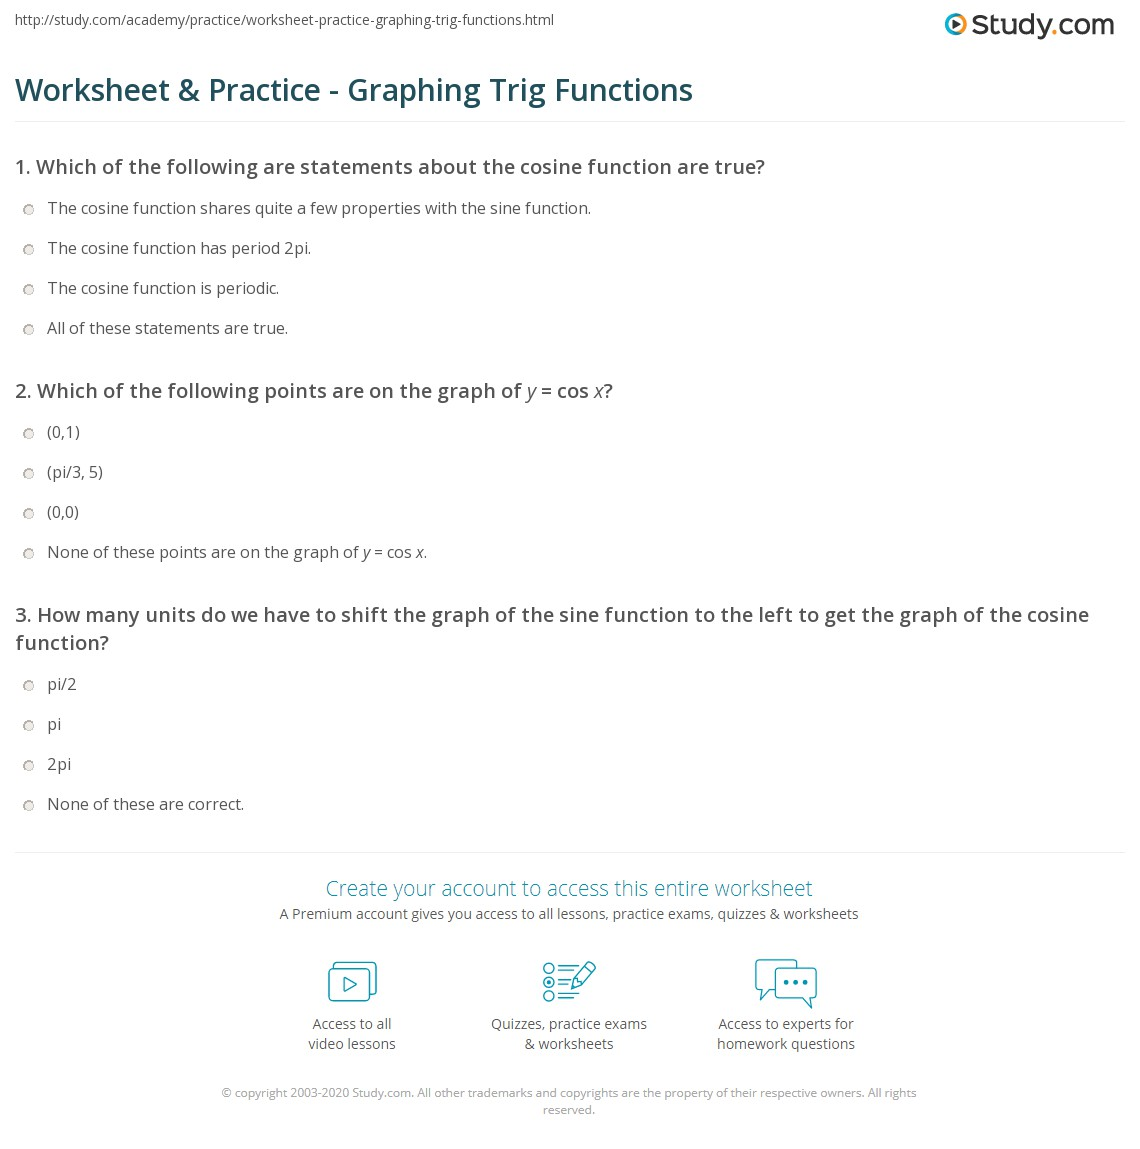 Worksheet Practice Graphing Trig Functions – Graphing Trig Functions Worksheet